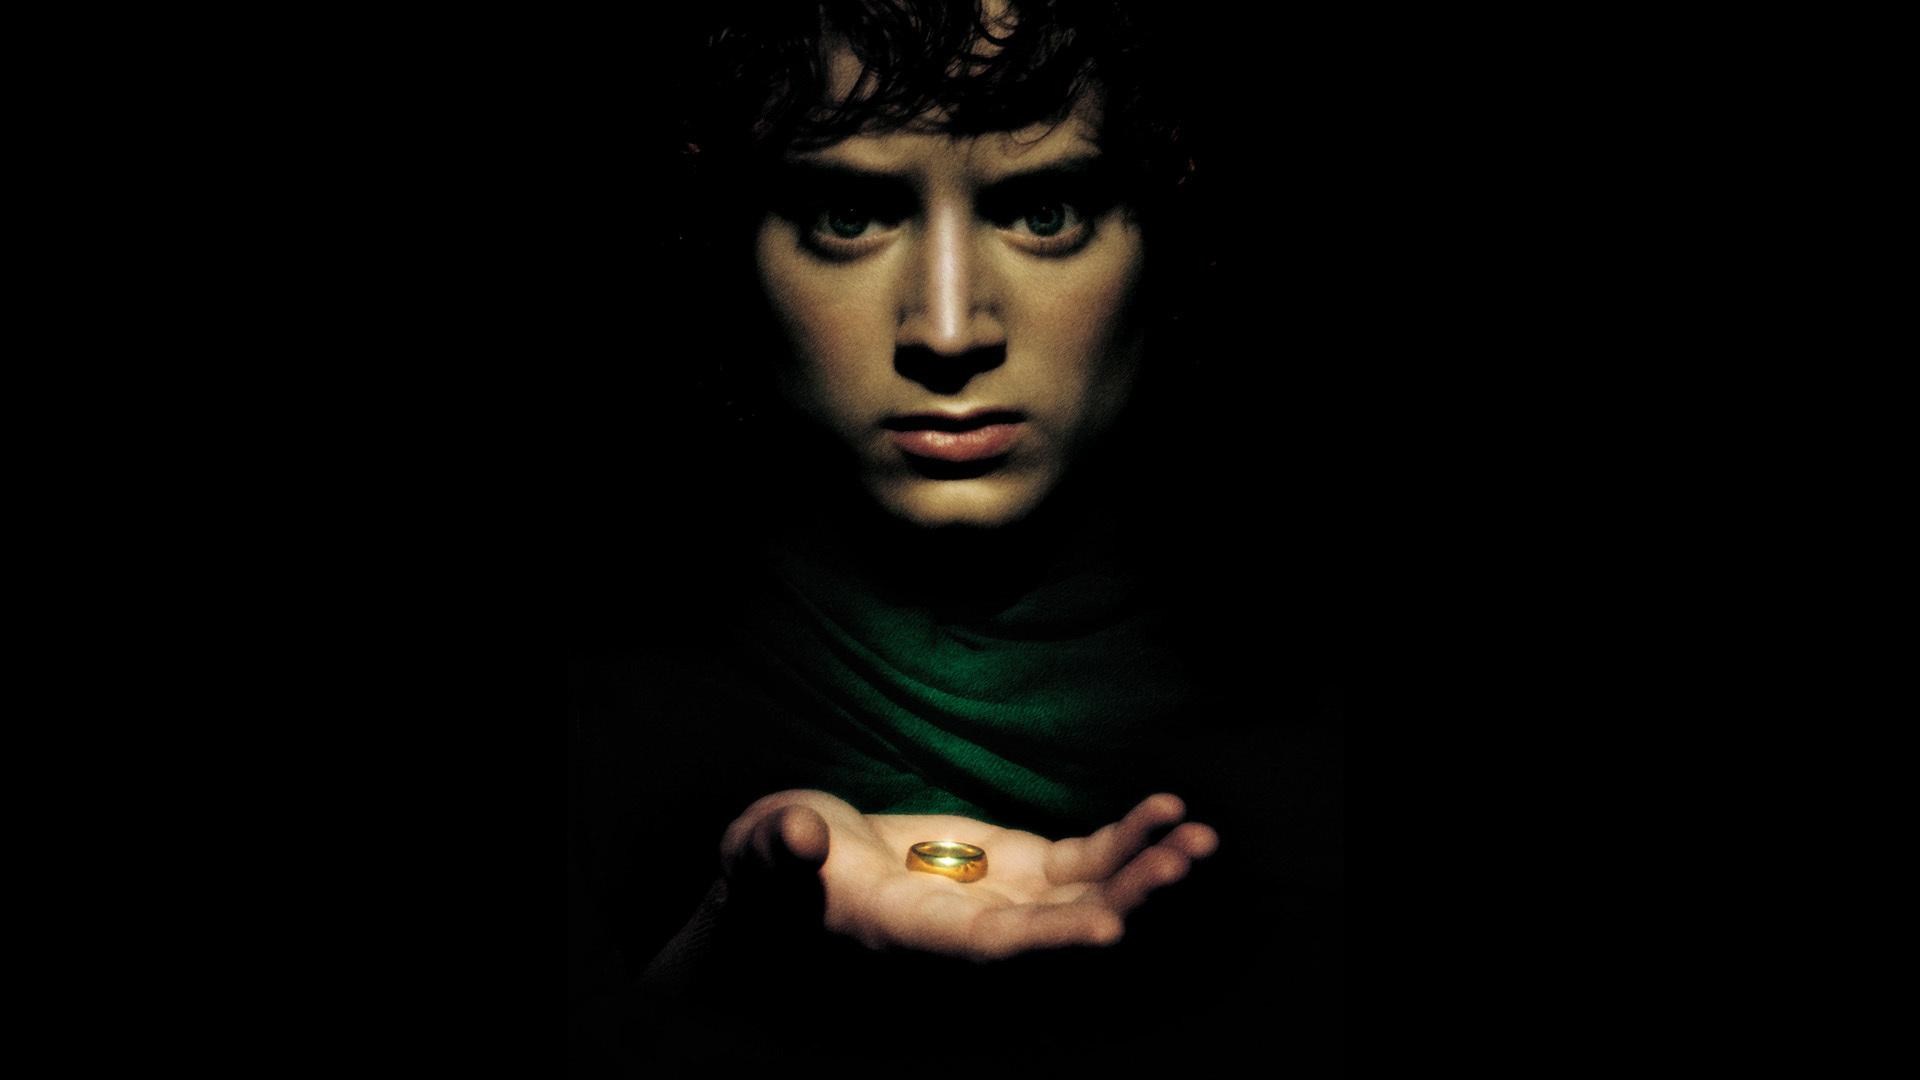 Elijah Wood Frodo HD Wallpaper, Backgrounds Image